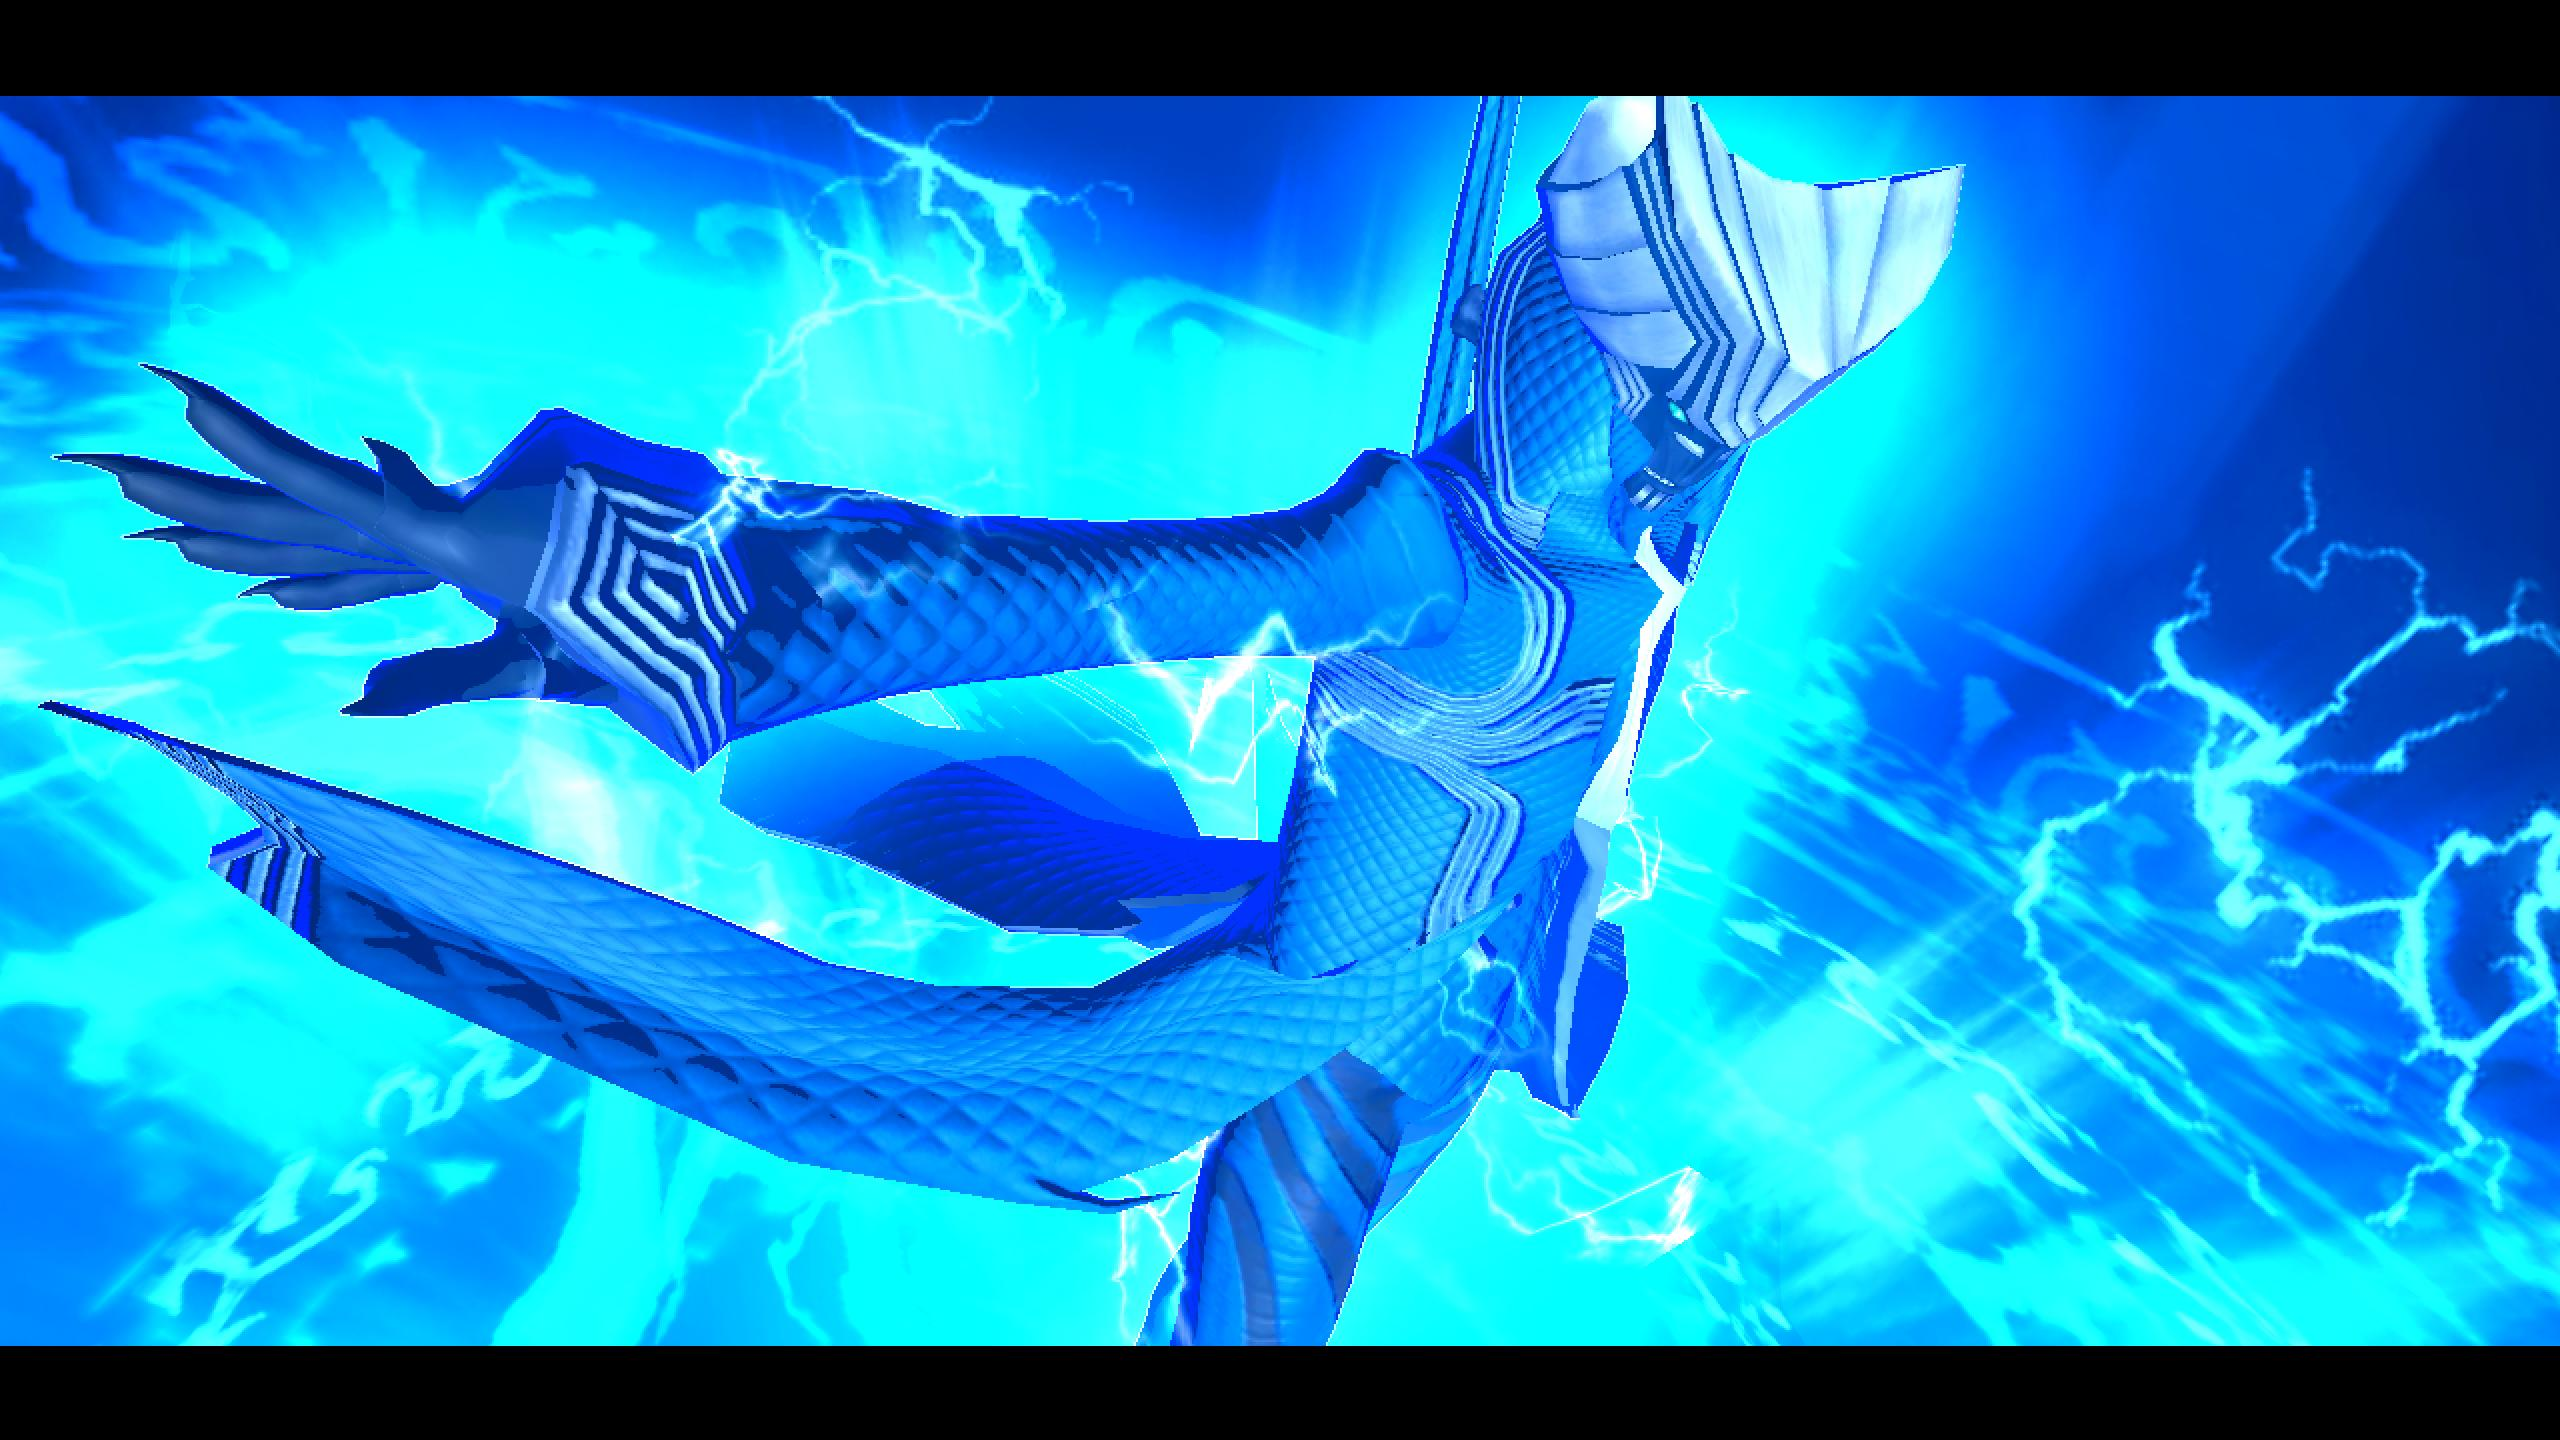 Vergil dans Ultimate Marvel vs. Capcom 3 6151127274_d7d9221293_o